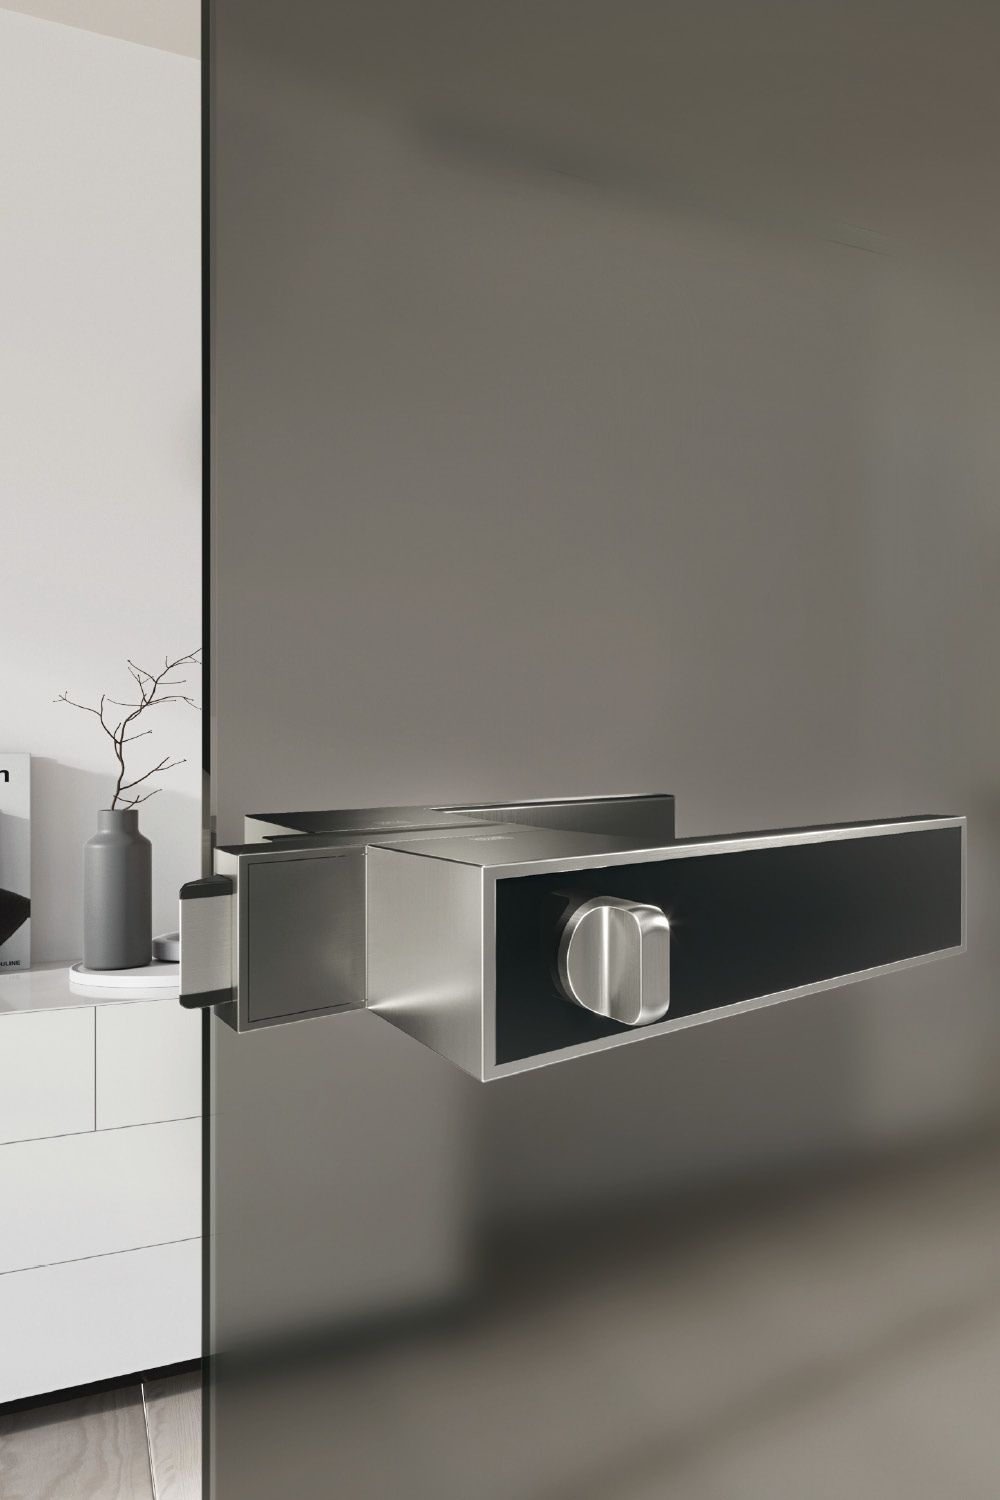 For The Minimalist Frame Handle Concept There Is Now Also A Lock For All Glass Doors The Lock Is Hardly Bigger Than A Matchbox Tur Mit Glas Glas Innenturen